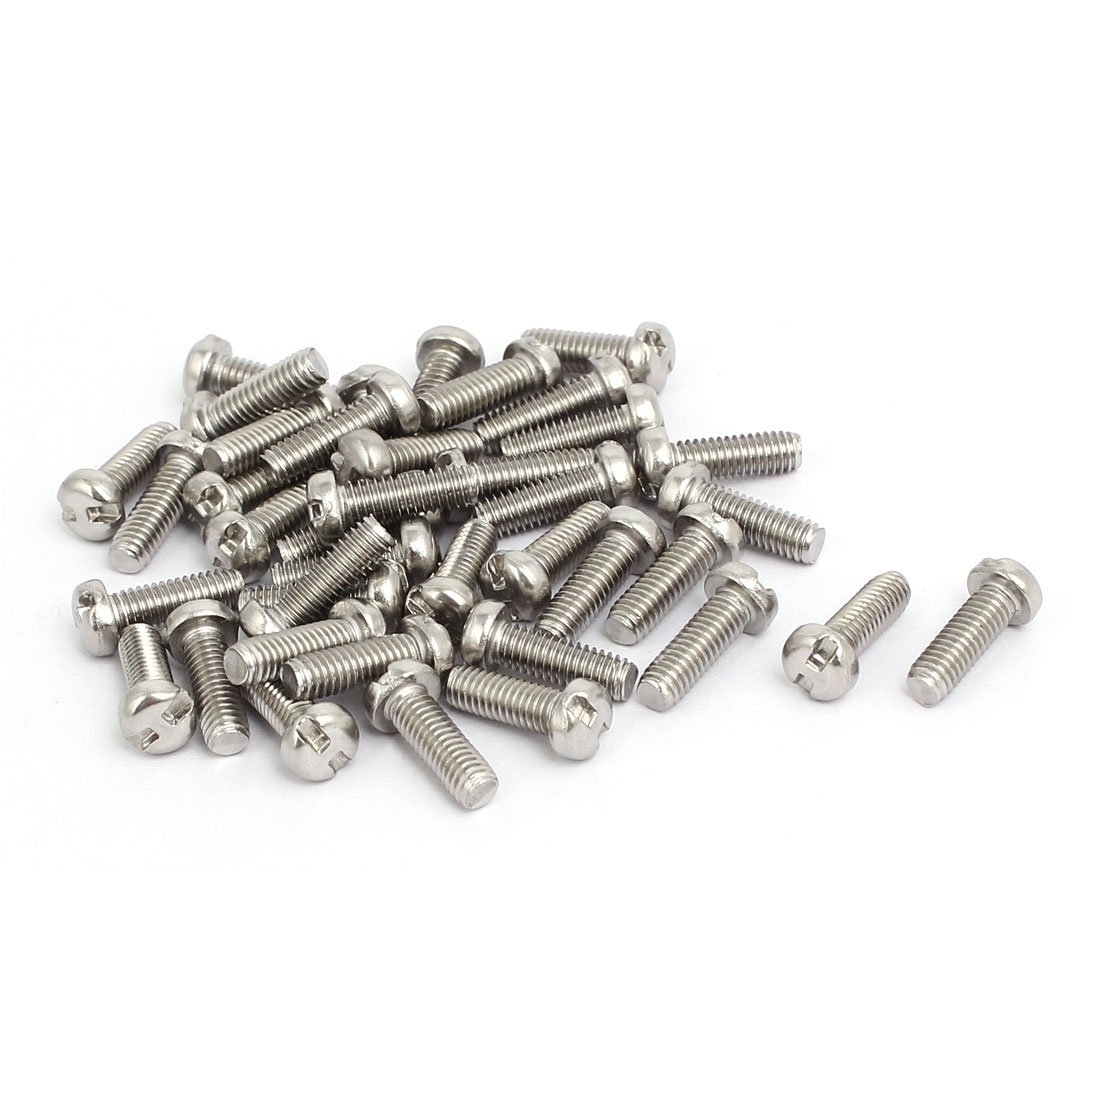 M4x12mm 304 Stainless Steel H-Type Drive Pan Head Tamper Proof Screws 40pcs